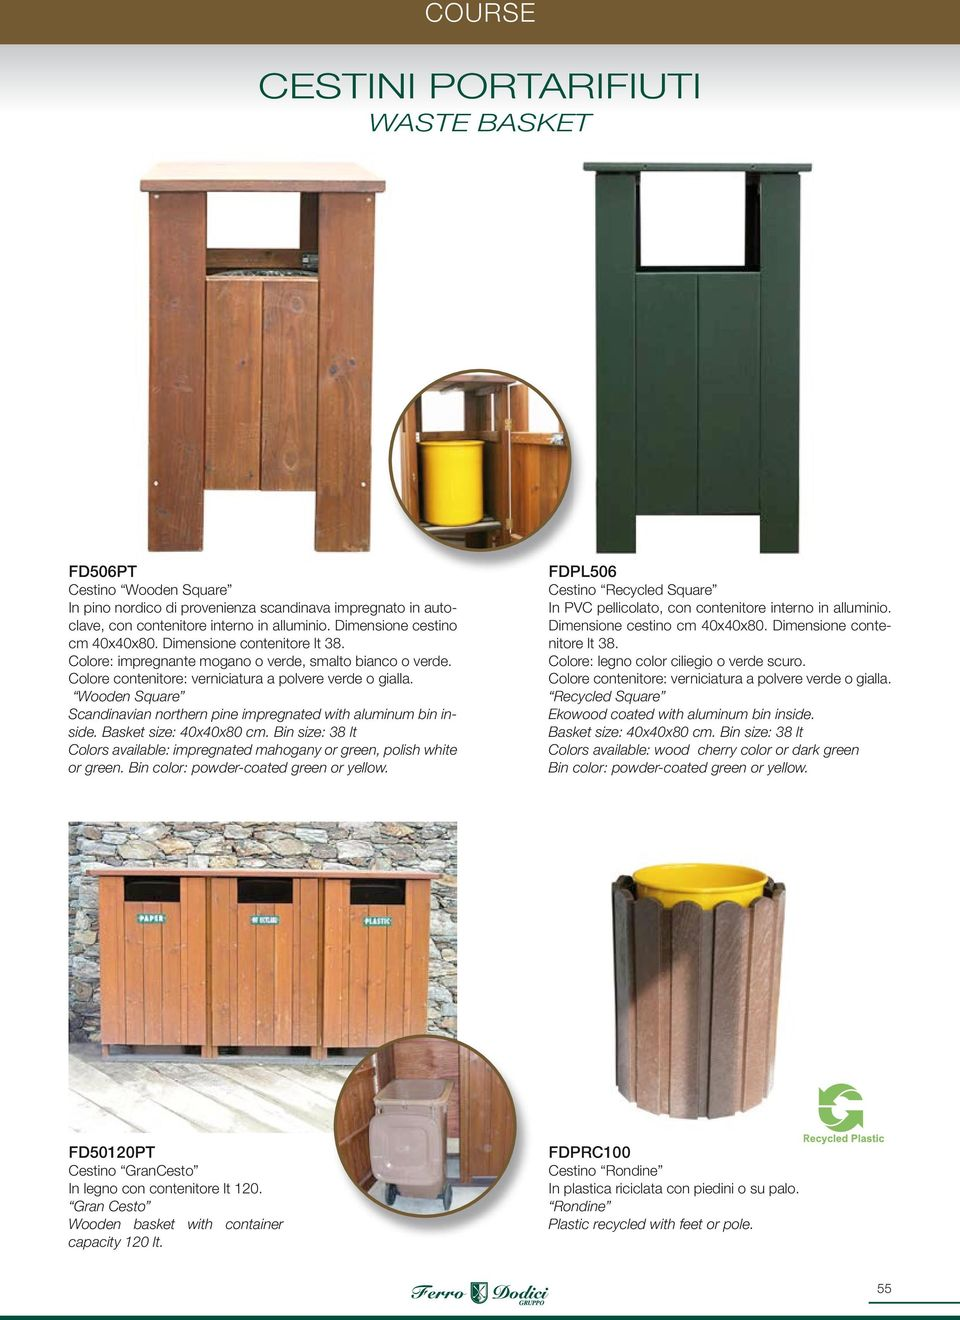 Wooden Square Scandinavian northern pine impregnated with aluminum bin inside. Basket size: 40x40x80 cm. Bin size: 38 lt Colors available: impregnated mahogany or green, polish white or green.